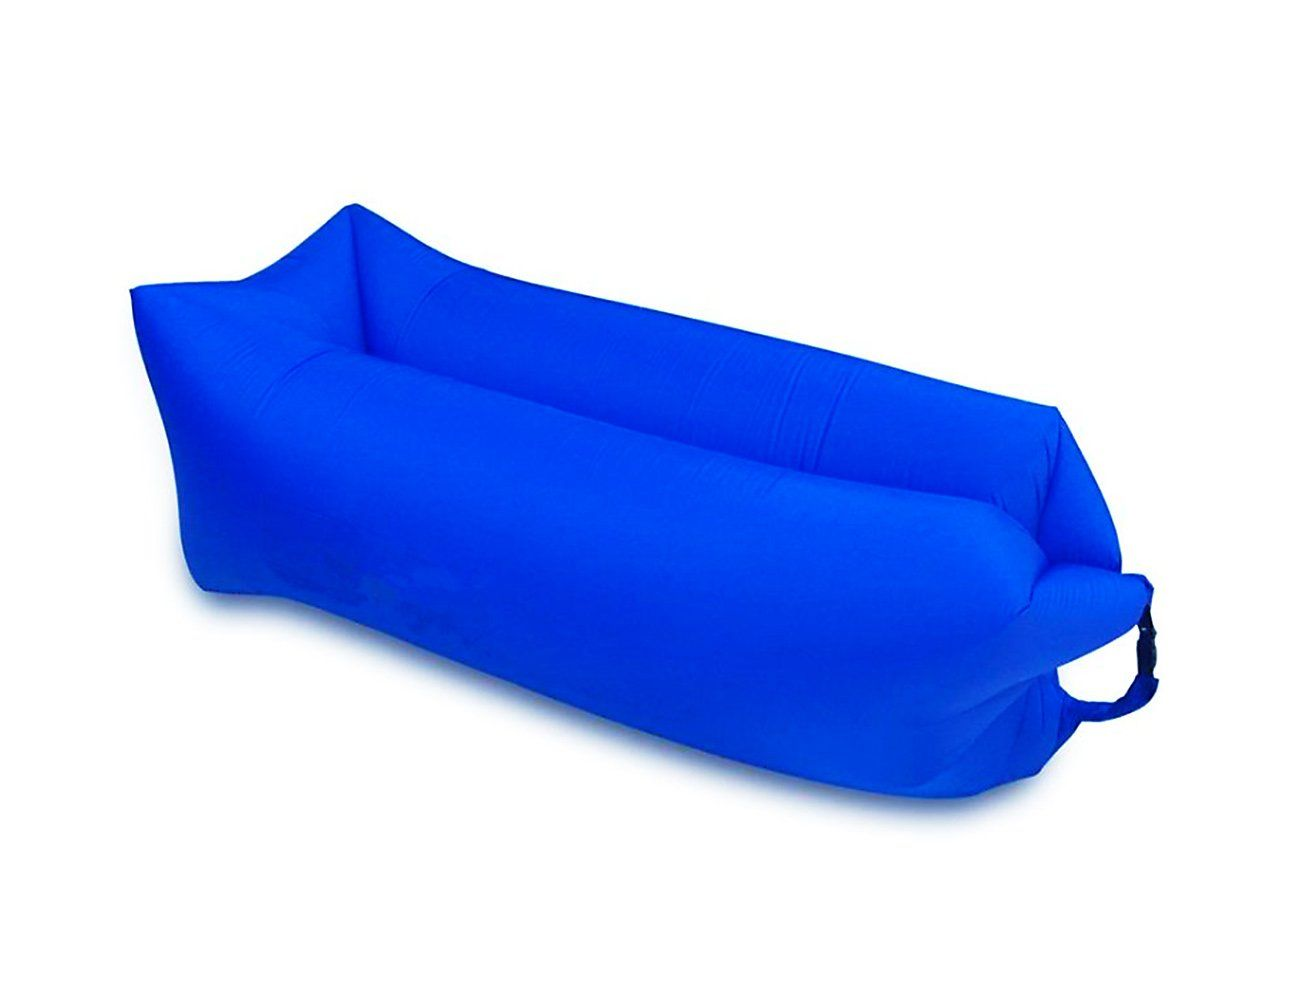 Jsutyer Inflatable Lounger Portable Air Couch Air Sofa Bag Indoor Or Outdoor Inflatable Chair Ideal Hol Inflatable Lounger Outdoor Inflatables Inflatable Chair